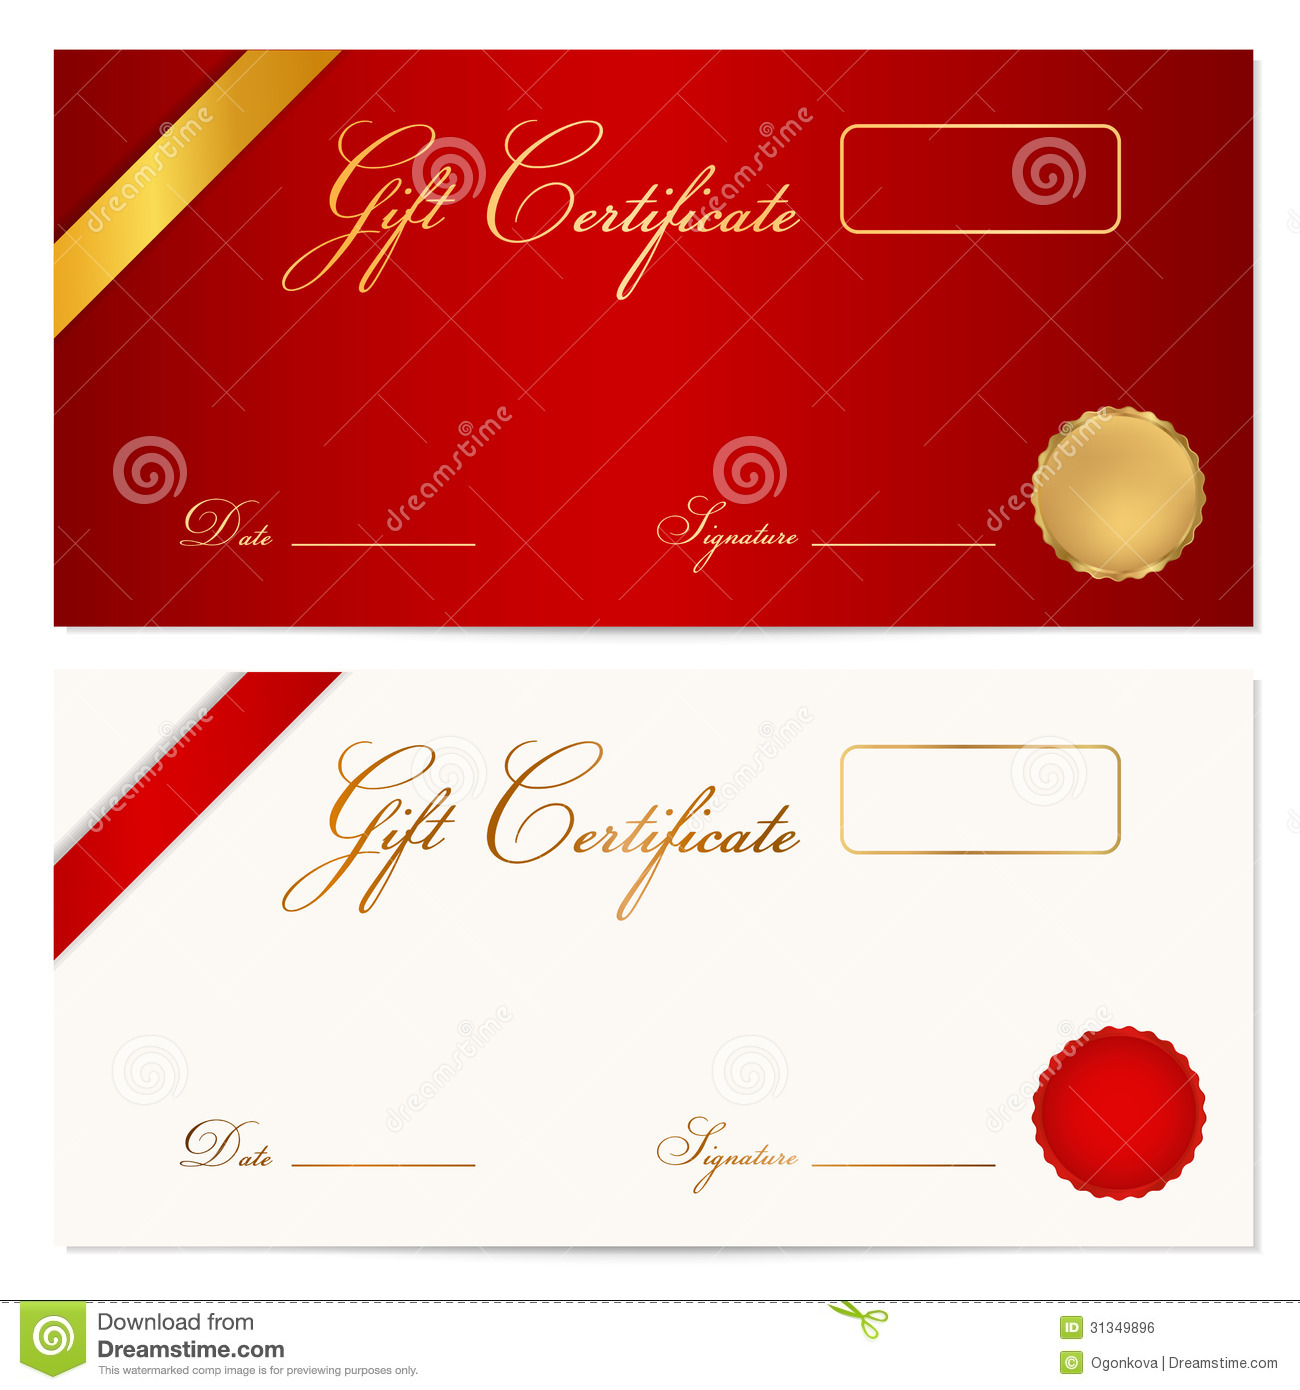 Gift certificate voucher template wax seal stock vector image royalty free stock photo download gift certificate voucher template xflitez Choice Image